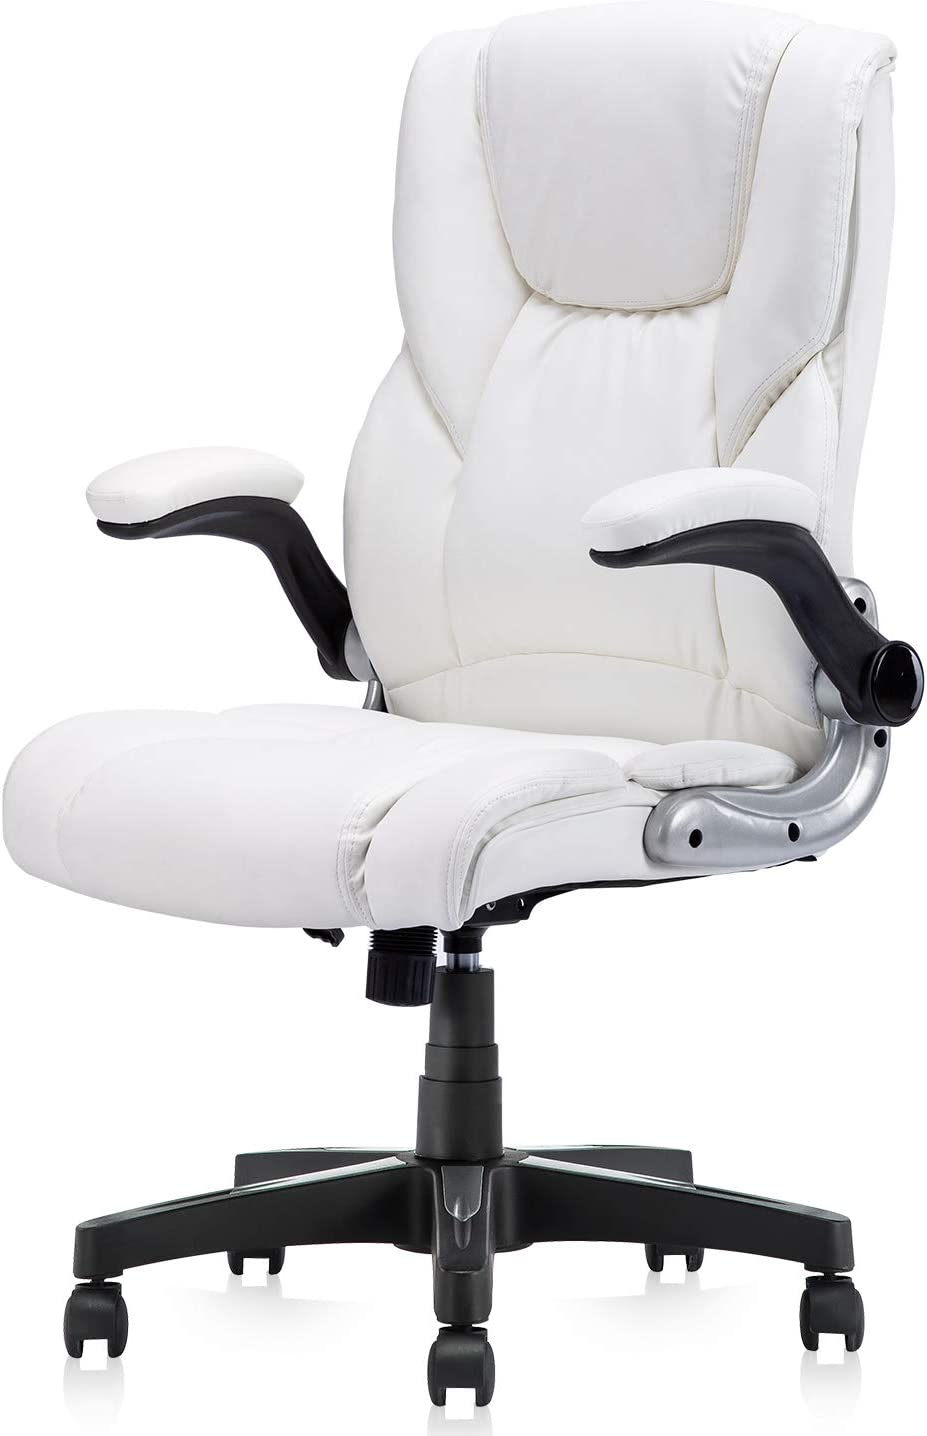 Arms Swivel Task Chair Gaming, White Computer Desk Chairs